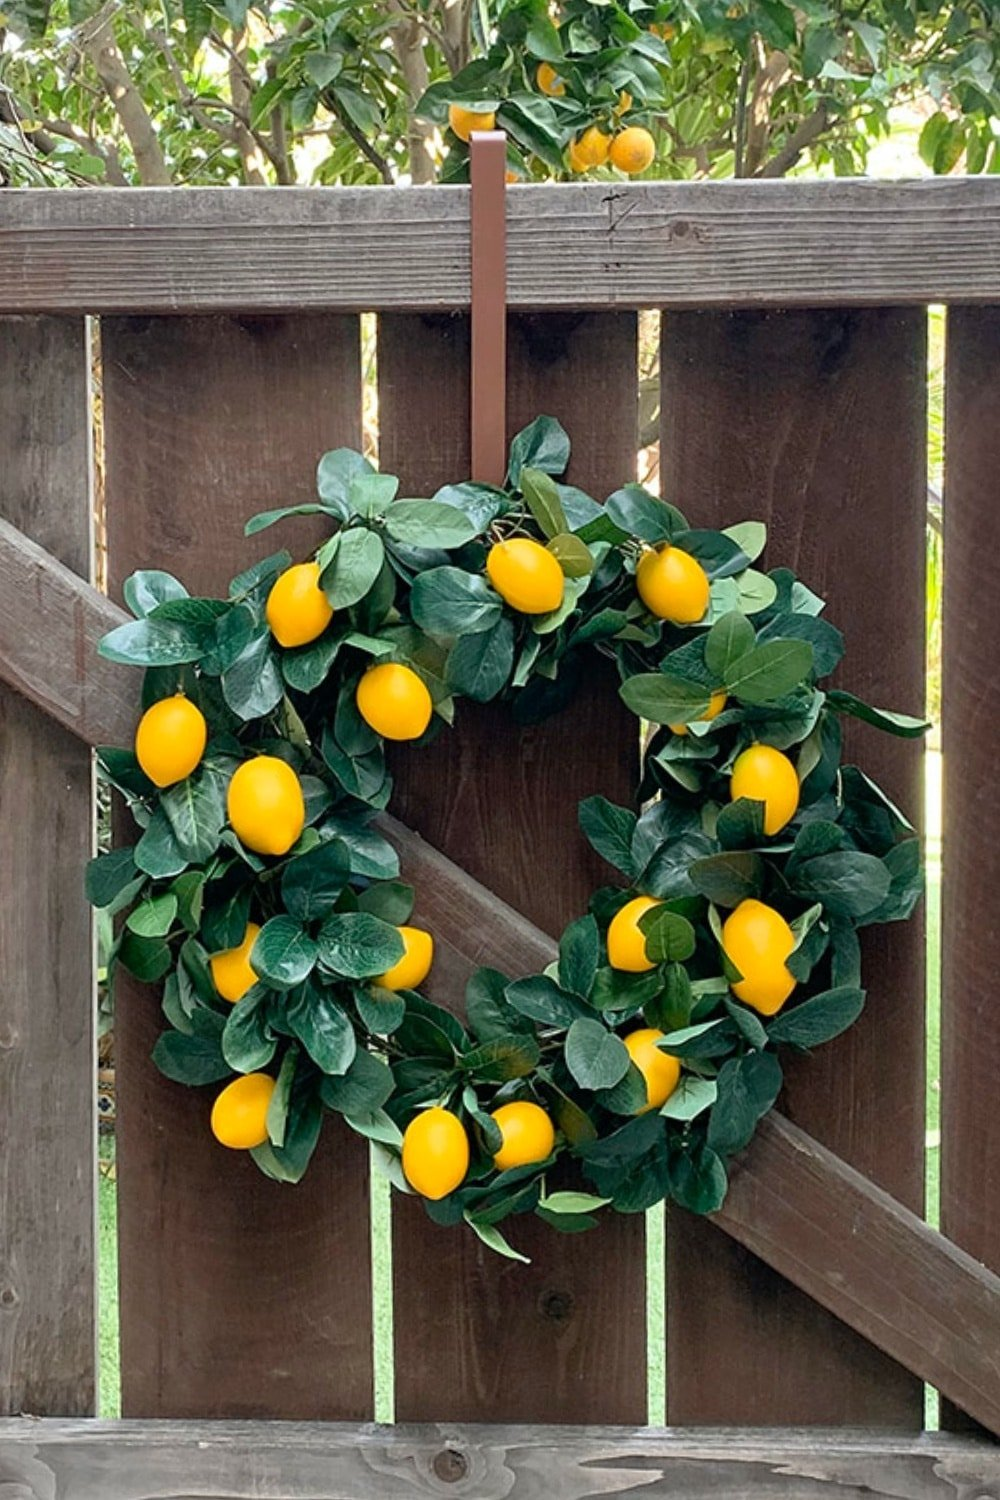 DIY Lemon Wreath from a Garland